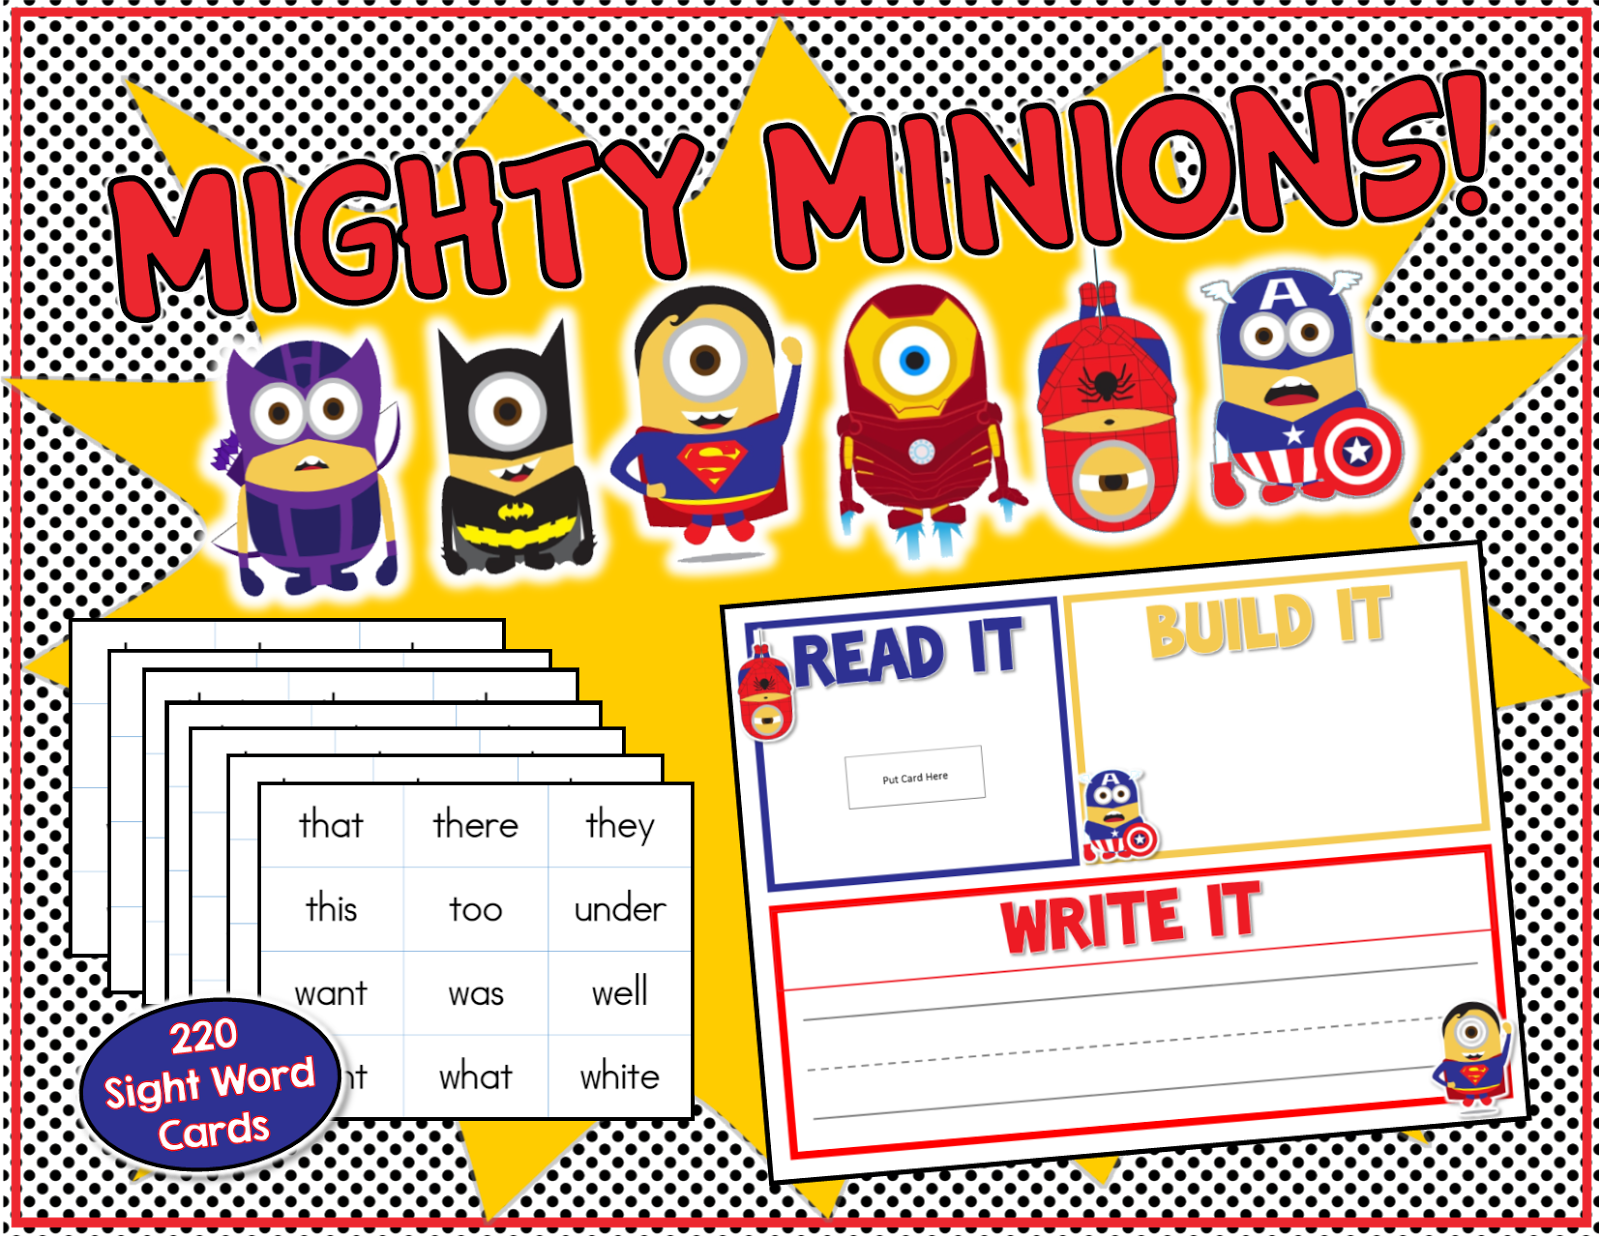 image library stock Writer clipart word work center. Mighty minions and don